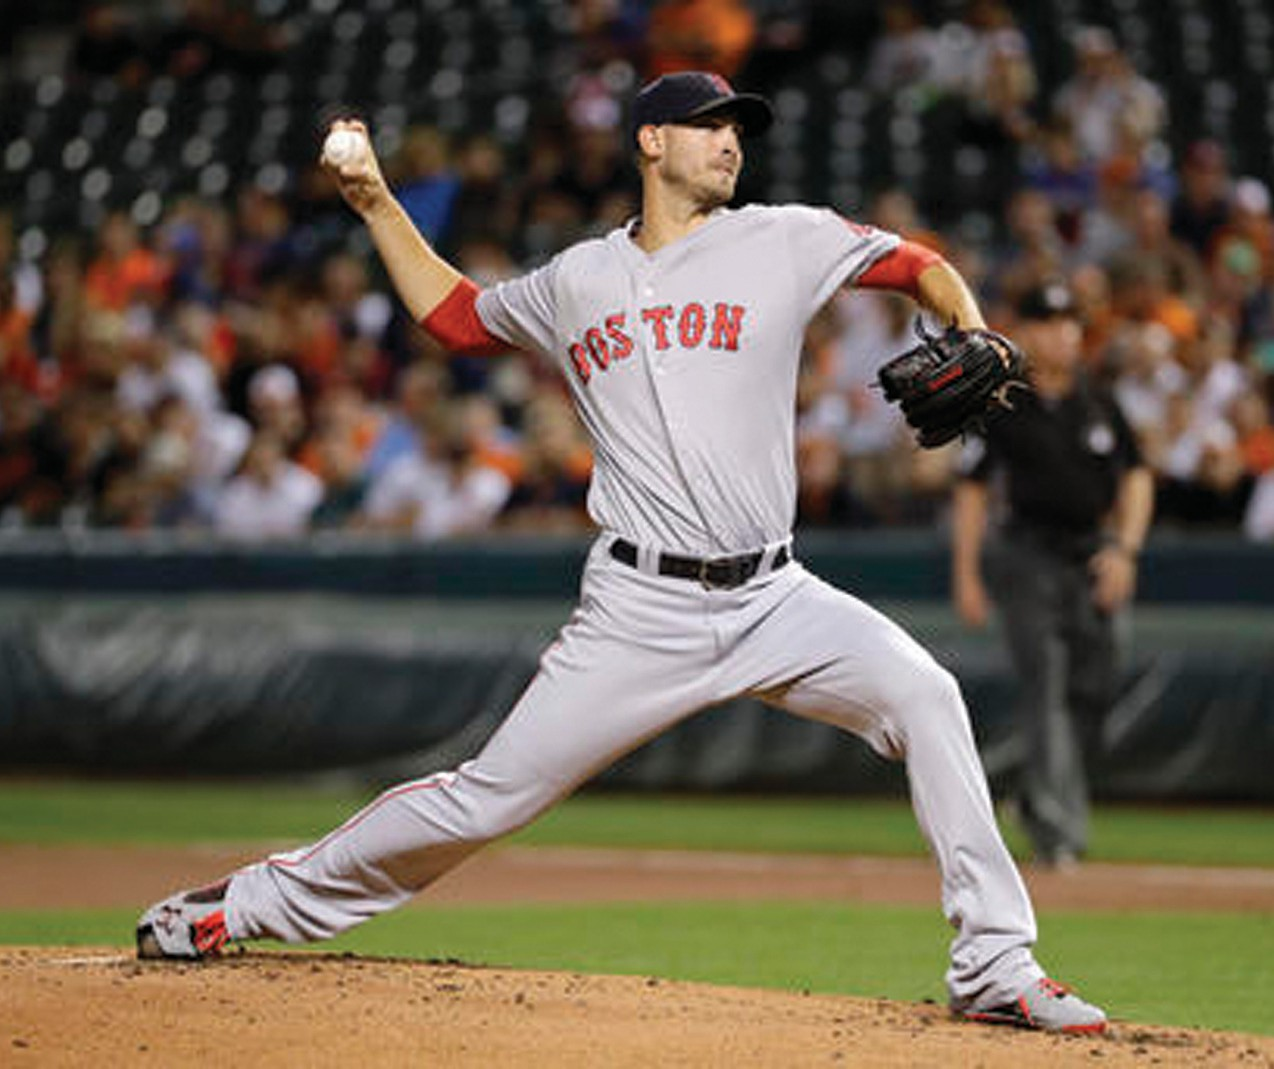 Boston Red Sox starting pitcher Rick Porcello throws to the Baltimore Orioles in the first inning of a baseball game in Baltimore, Monday, Sept. 19, 2016.